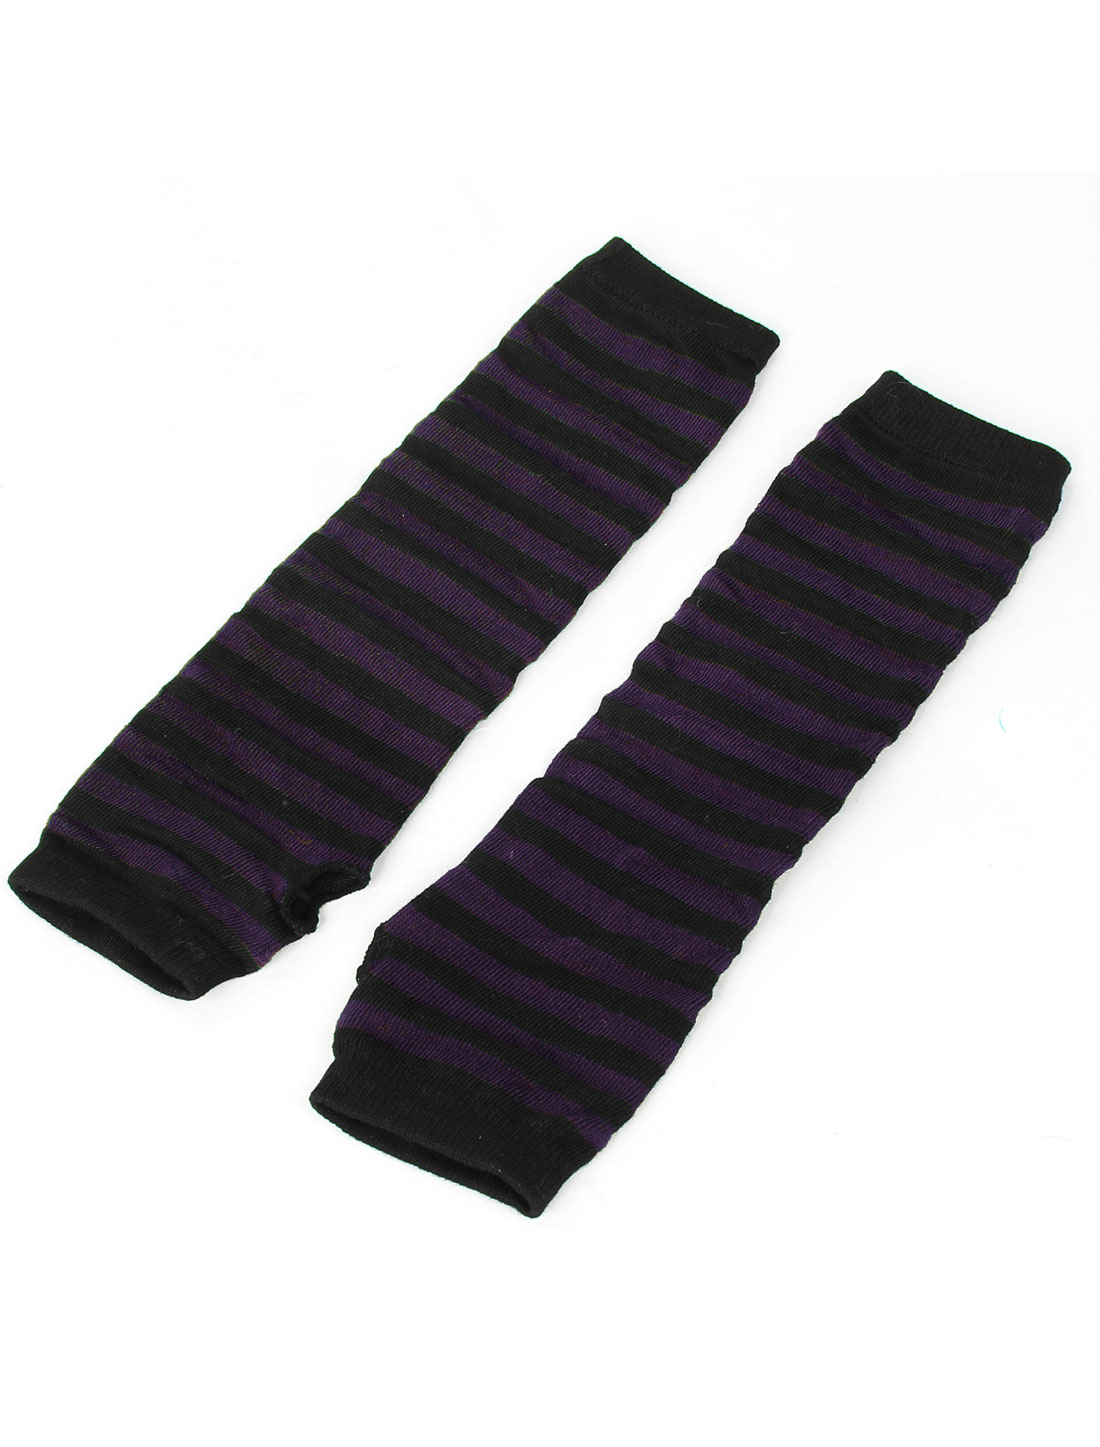 Pair Black Purple Stripe Print Elastic Fingerless Acrylic Elbow Gloves for Woman